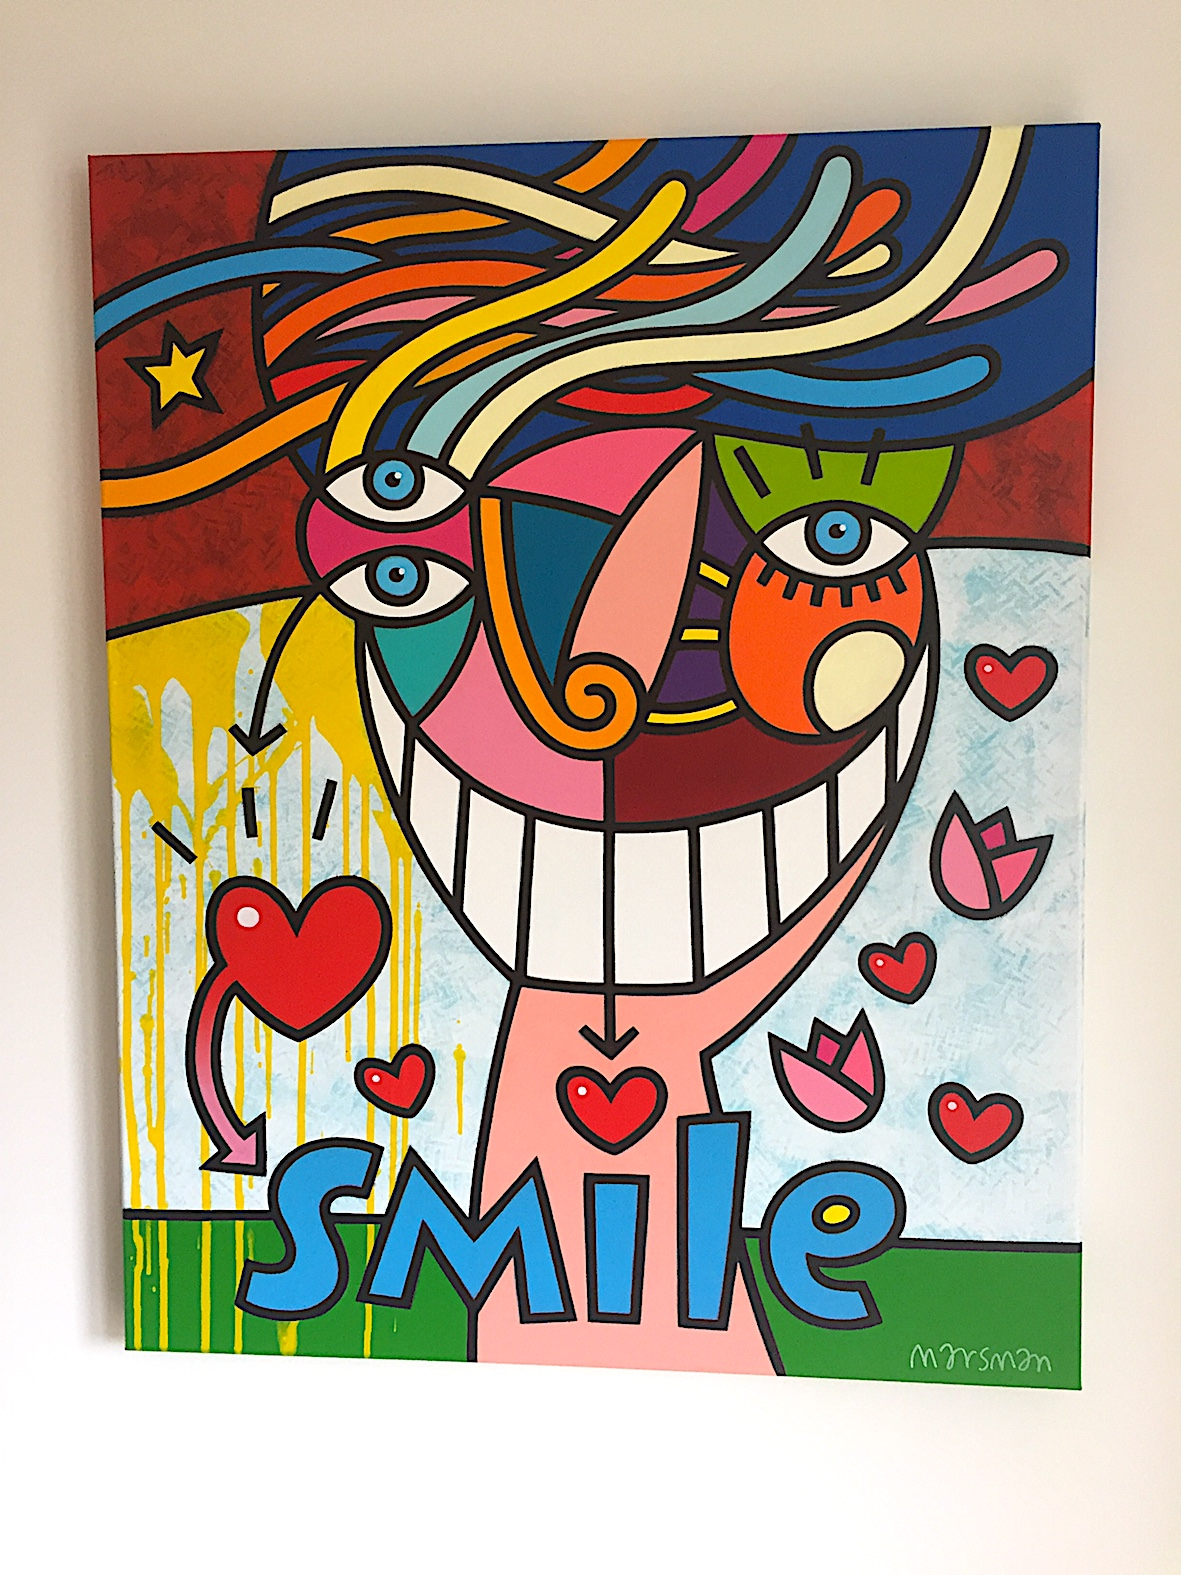 "<b>SMILE</b> - 80 x 100 cm - acrylic on canvas - SOLD  <a style=""color: red; text-decoration: none"" href=""mailto:jpgpmarsman@onsbrabantnet.nl"">BESTEL</a>"